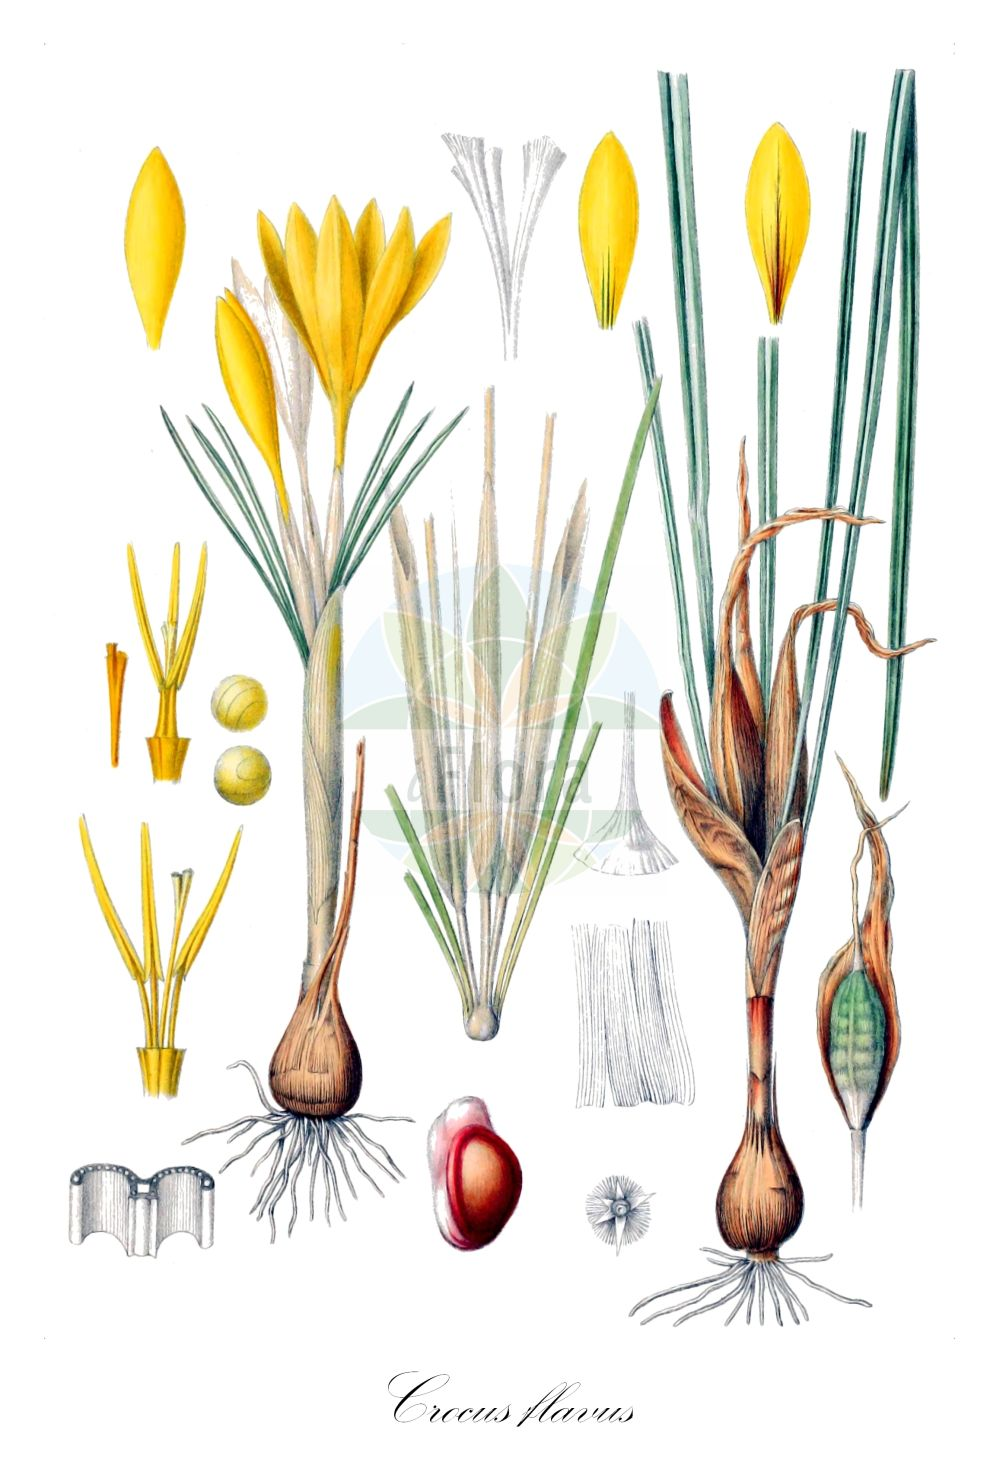 Historische Abbildung von Crocus flavus (Gold-Krokus - Dutch Yellow Crocus). Das Bild zeigt Blatt, Bluete, Frucht und Same. ---- Historical Drawing of Crocus flavus (Gold-Krokus - Dutch Yellow Crocus).The image is showing leaf, flower, fruit and seed. (Crocus flavus,Gold-Krokus,Dutch Yellow Crocus,Yellow Crocus,Crocus,Krokus,Crocus,Iridaceae,Schwertliliengewaechse,Iris family,Blatt,Bluete,Frucht,Same,leaf,flower,fruit,seed,Maw (1886))